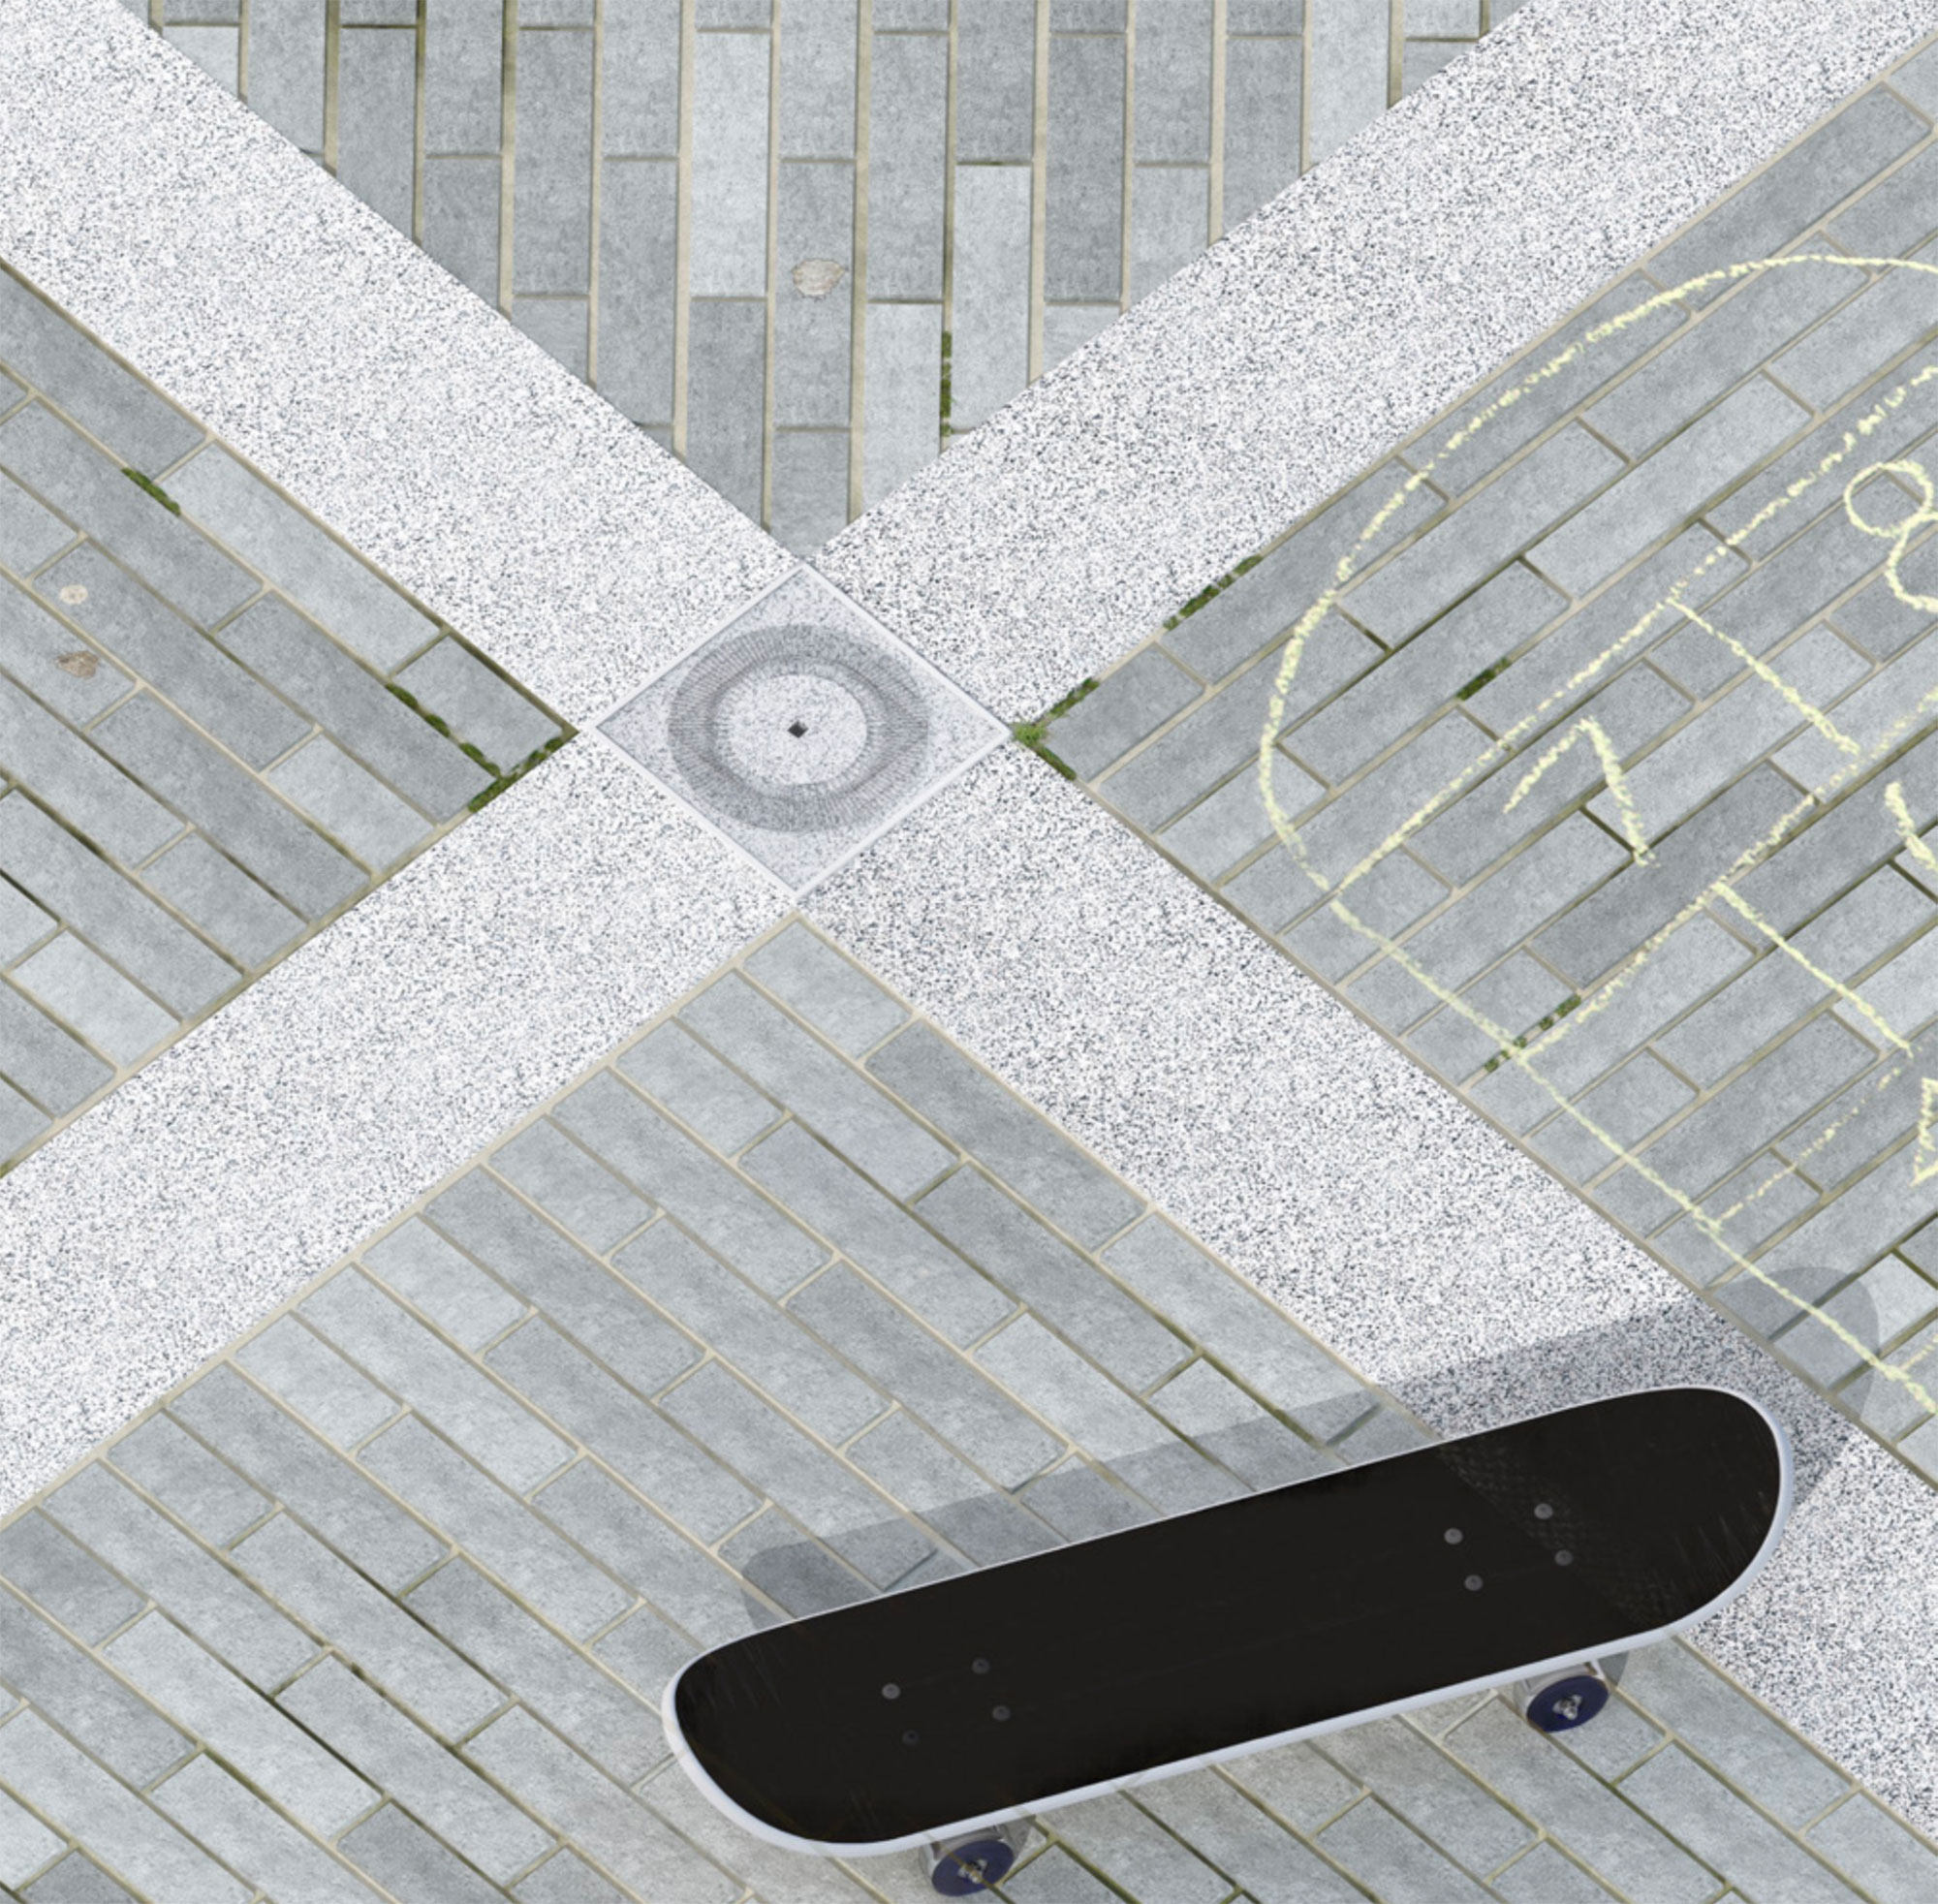 The proposal uses the materials associated with the conventional build up of the street but subverts their use. The kerb stone is turned on its axis to create a grid. At the meeting point of kerb stones a socket provides power and footing for buildings and furniture above ground.